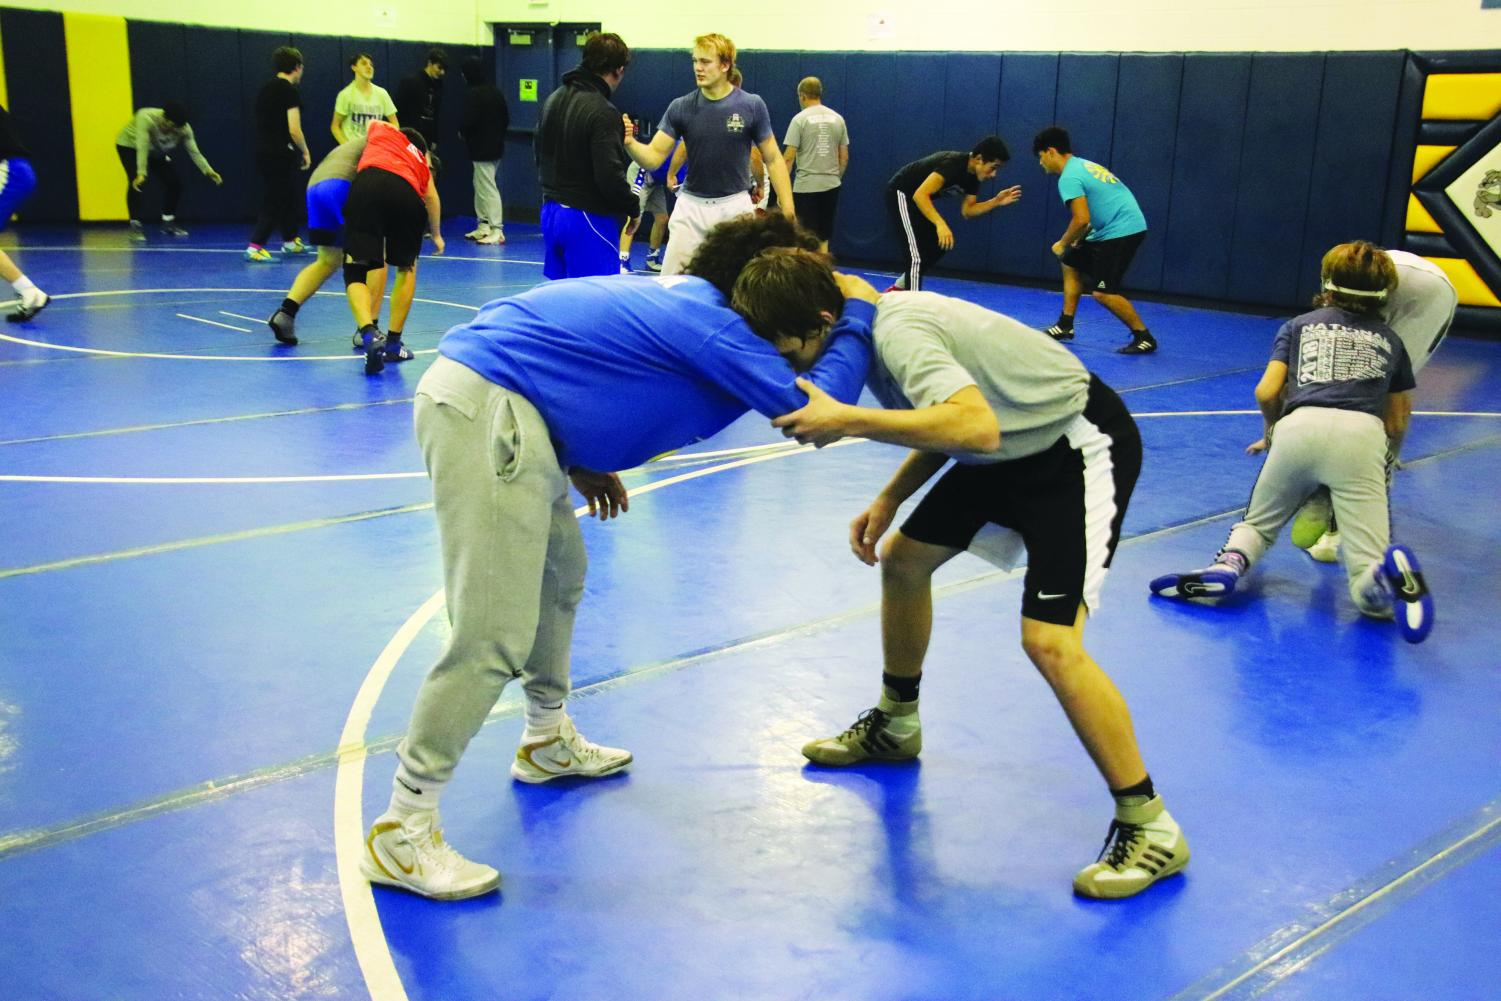 Two wrestlers tie up at the first practice of the season at North Platte High School on Nov. 18.